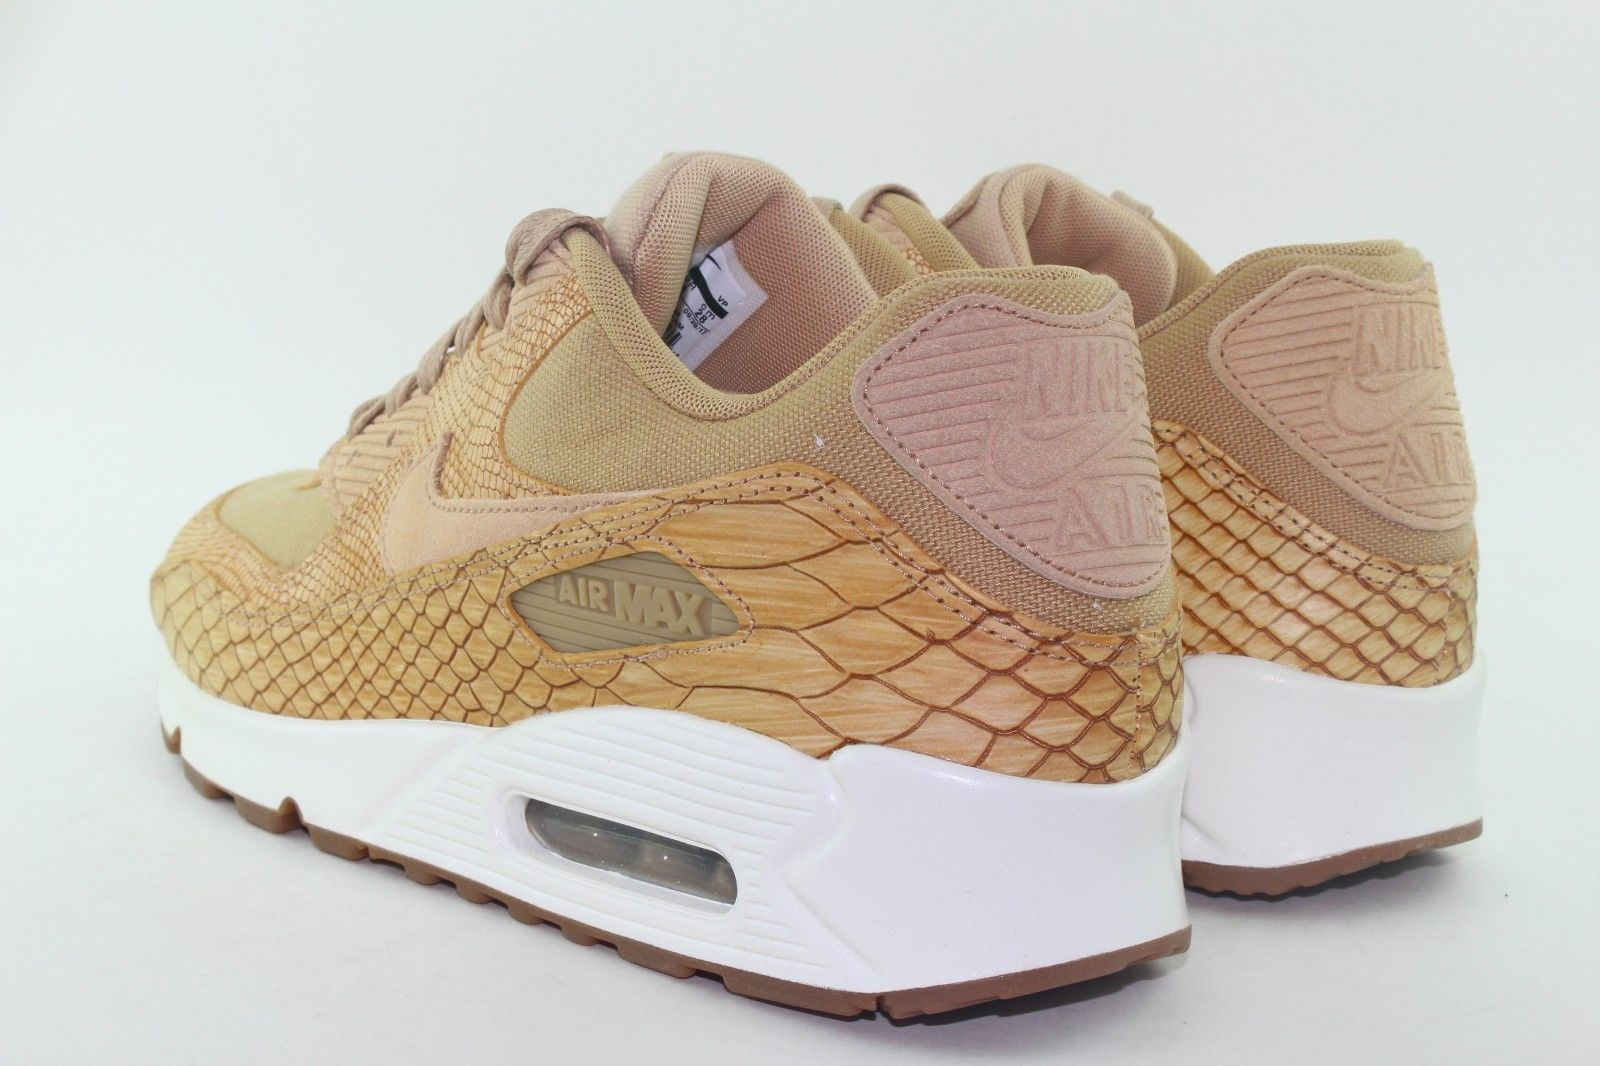 brand new 3fa8a 108b6 NIKE AIR MAX 90 PREMIUM LEATHER MEN 9.0 VACHETTA TAN NEW RARE RUNNING  COMFORT